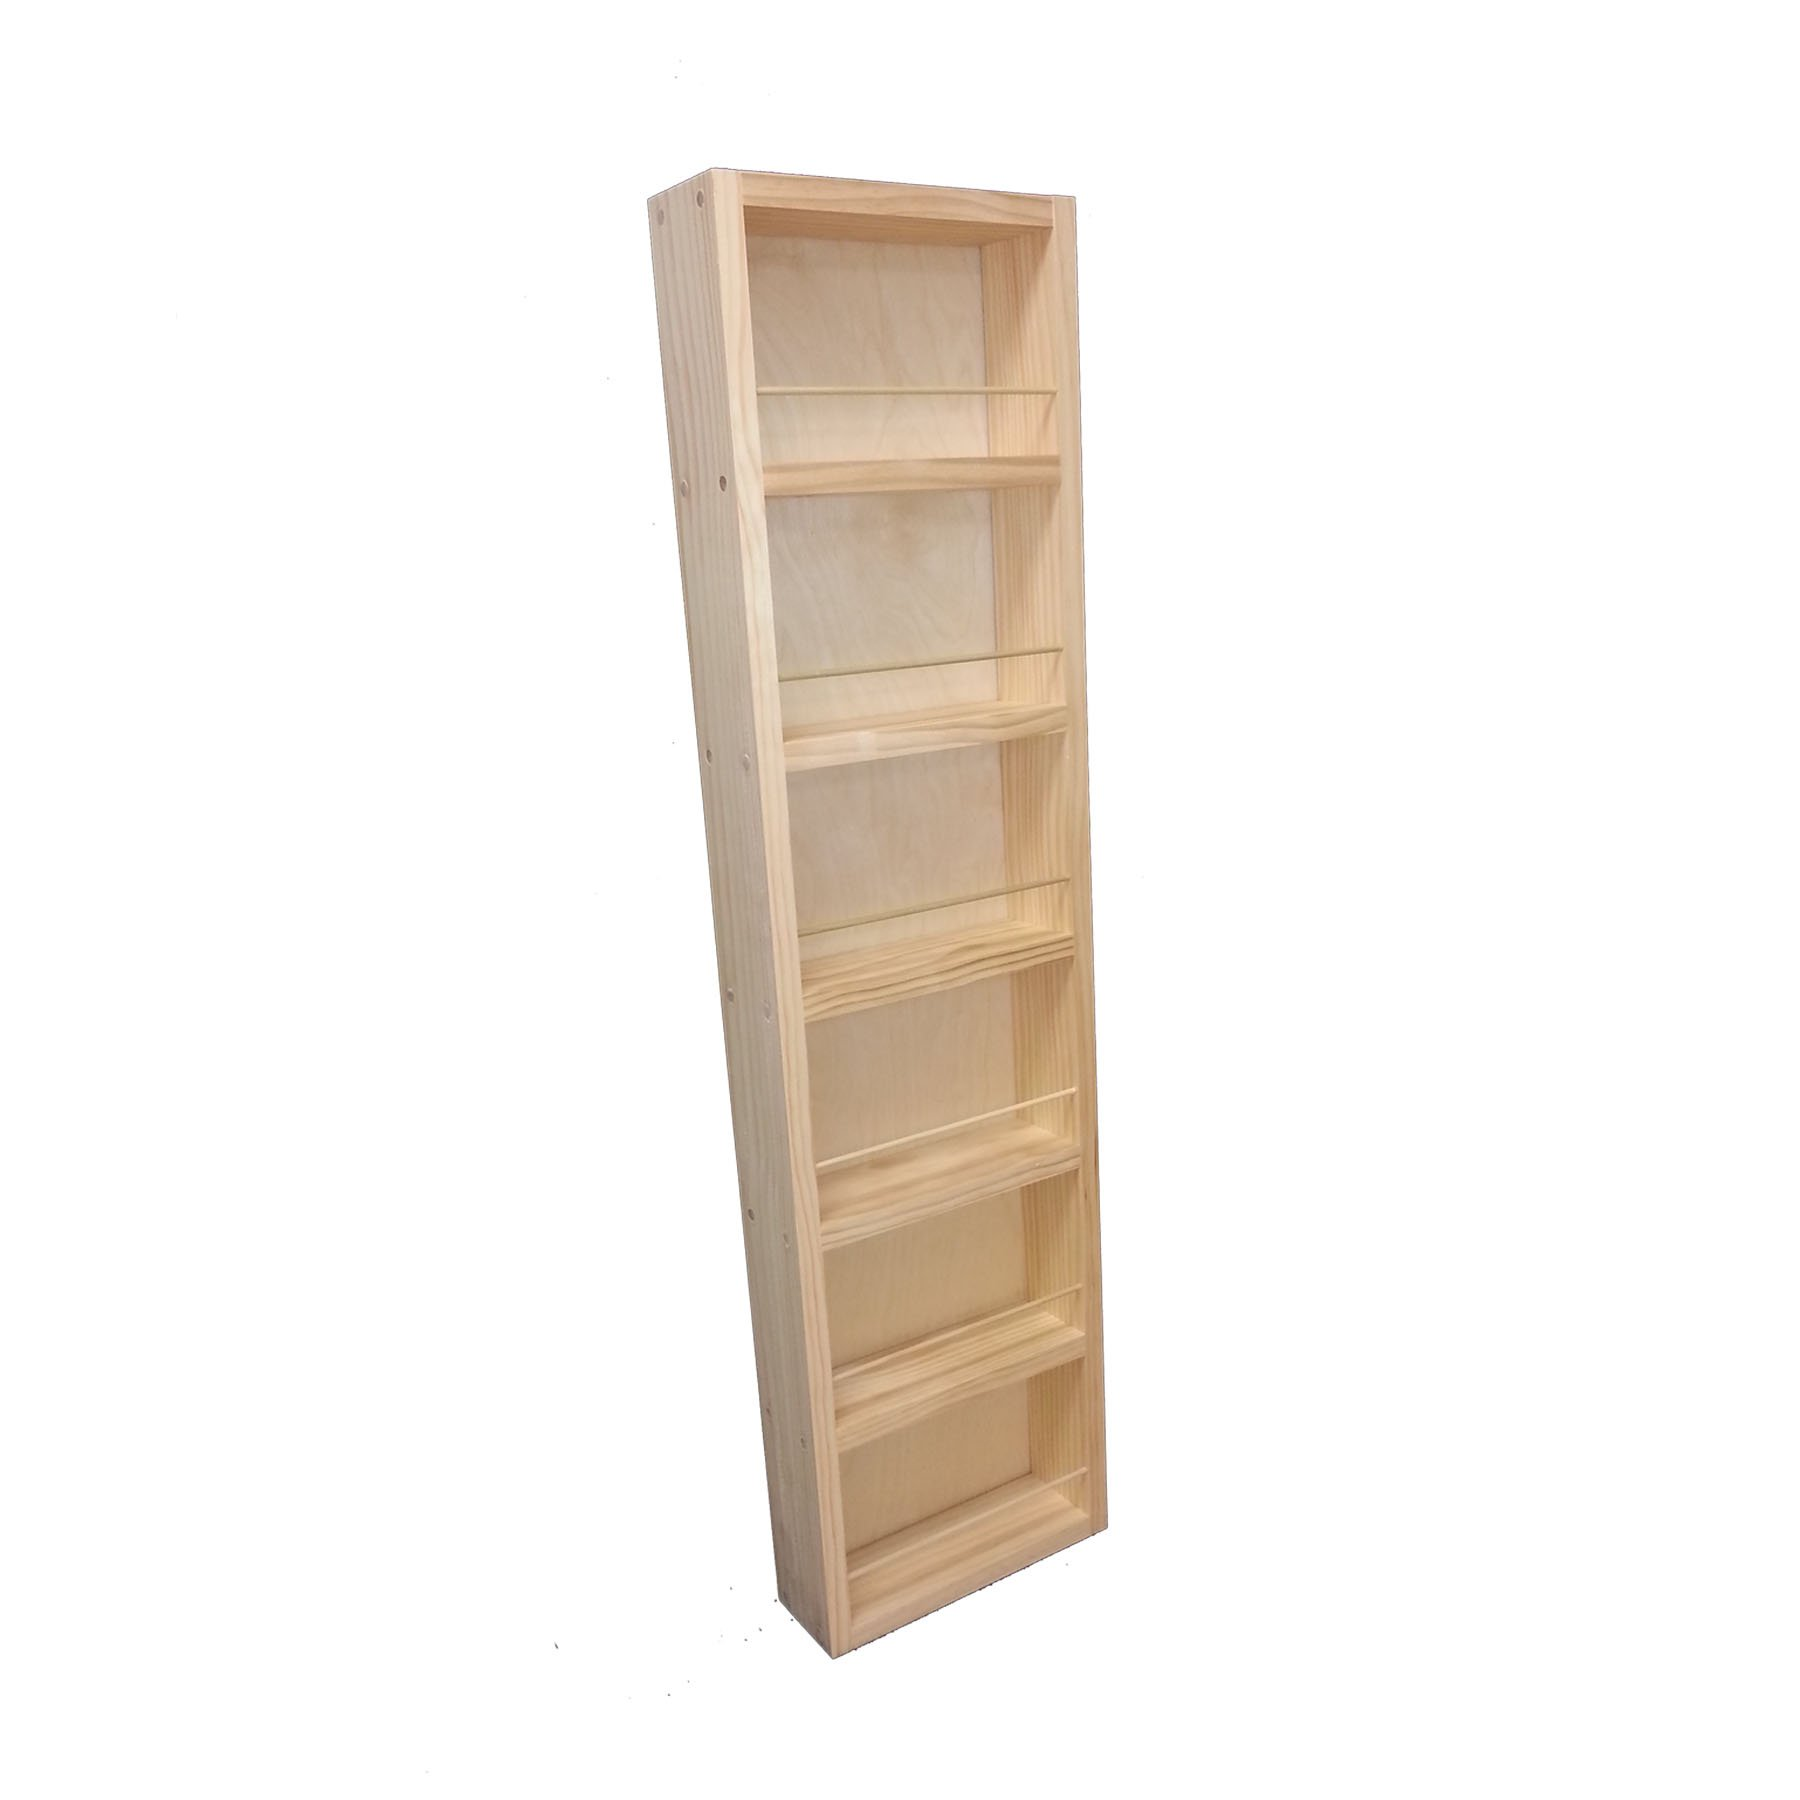 Wood Cabinets Direct Fulton on The Wall Spice Rack, 42'' Height x 14'' Width x 3.5'' Deep